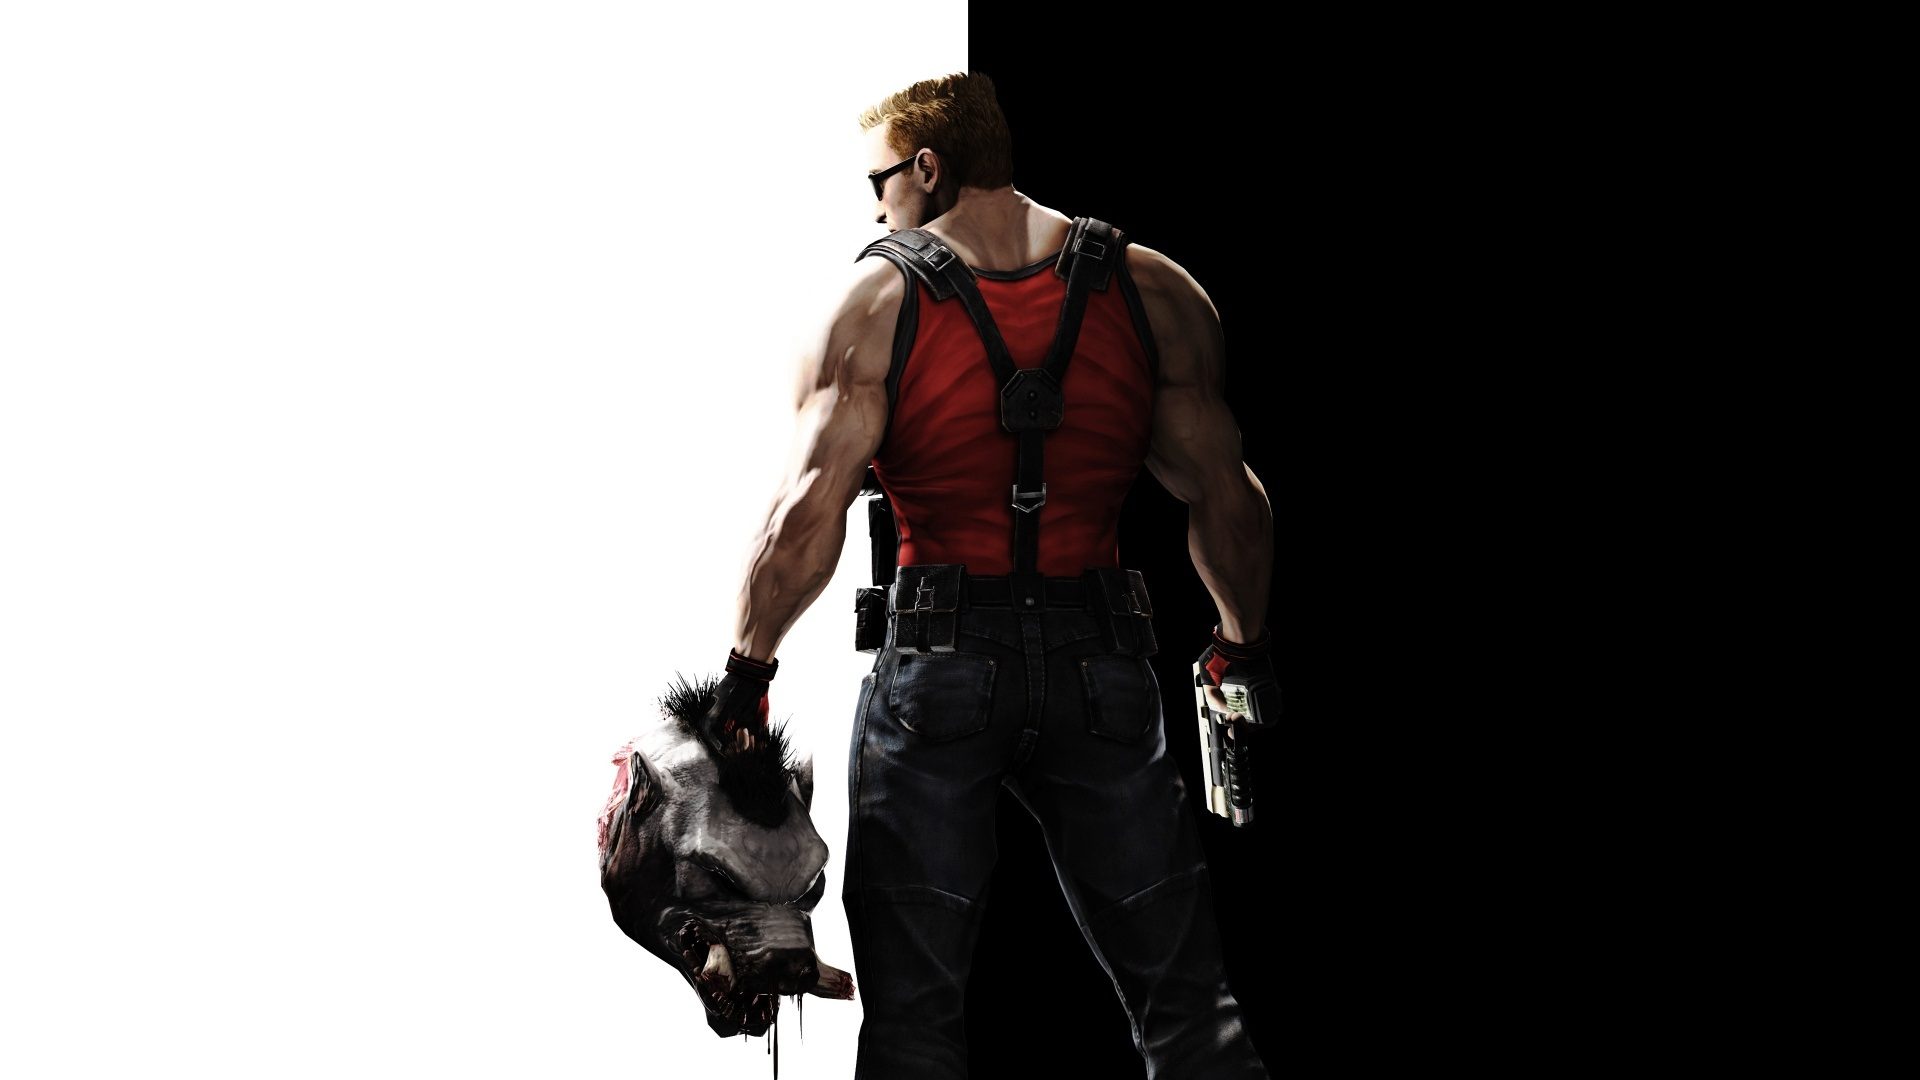 Here are some HD wallpapers from the new Duke Nukem Forever game 1920x1080